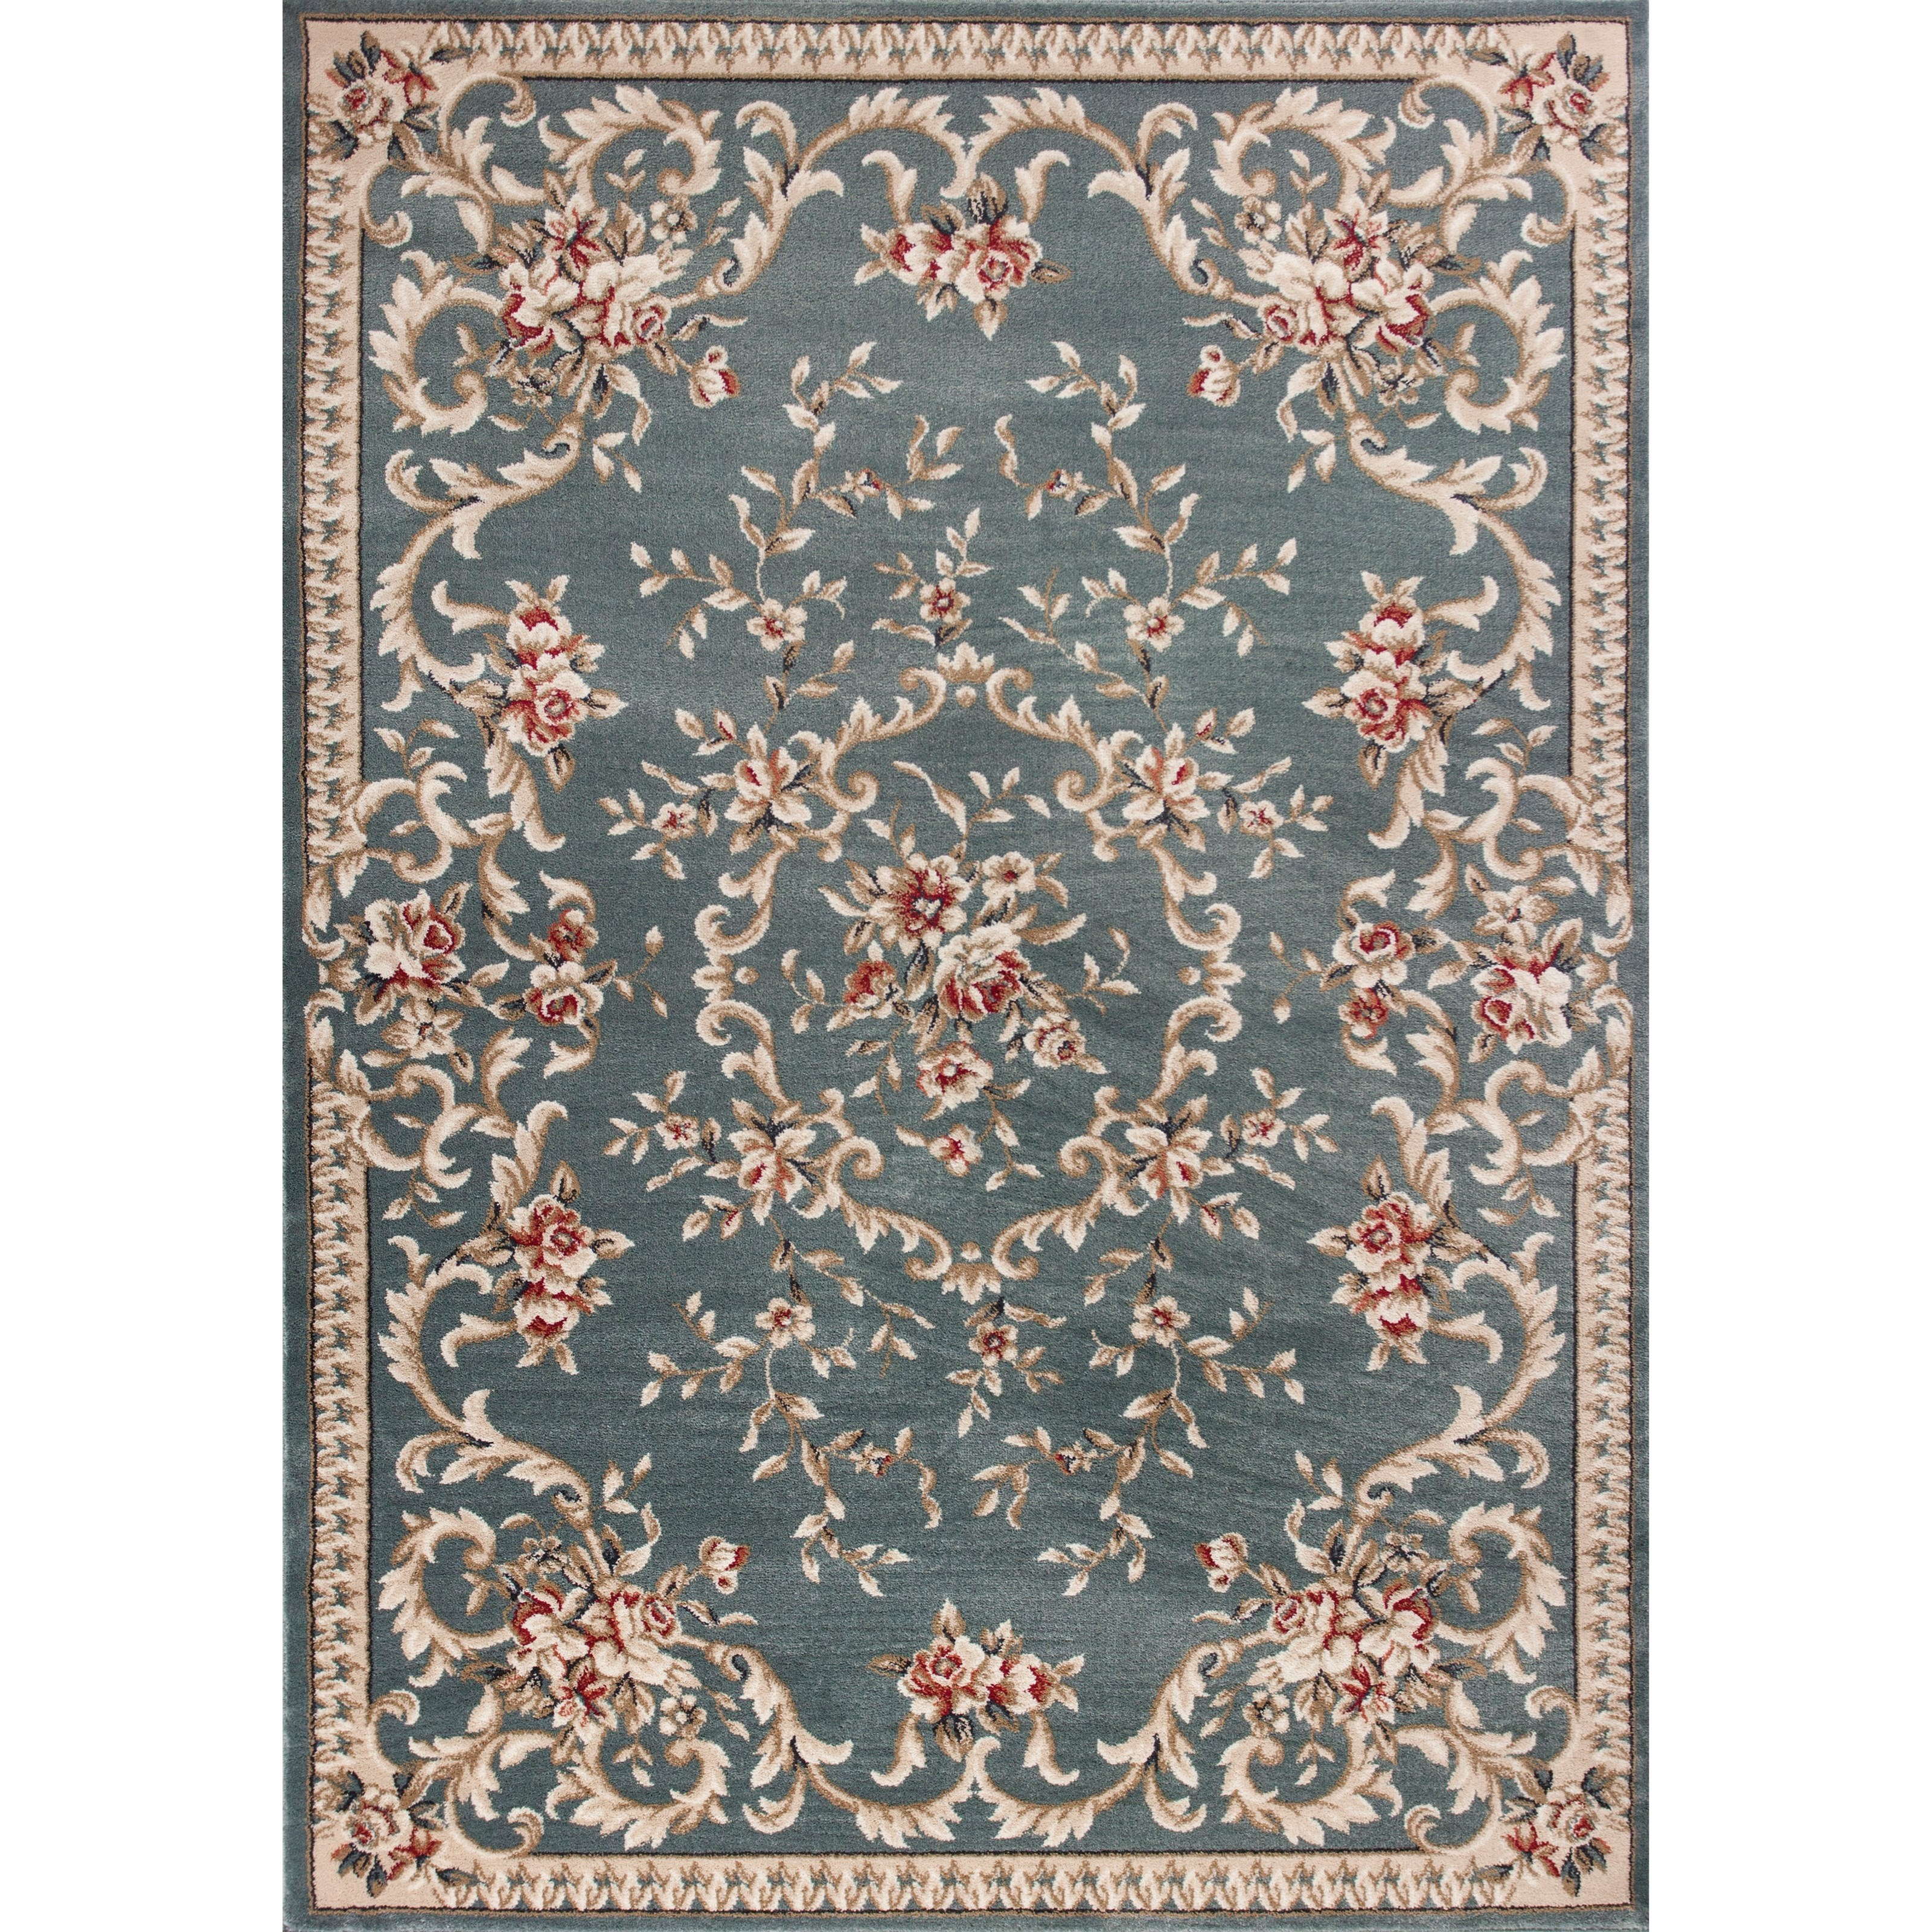 Avalon 12' X 9' Area Rug by Kas at Zak's Home